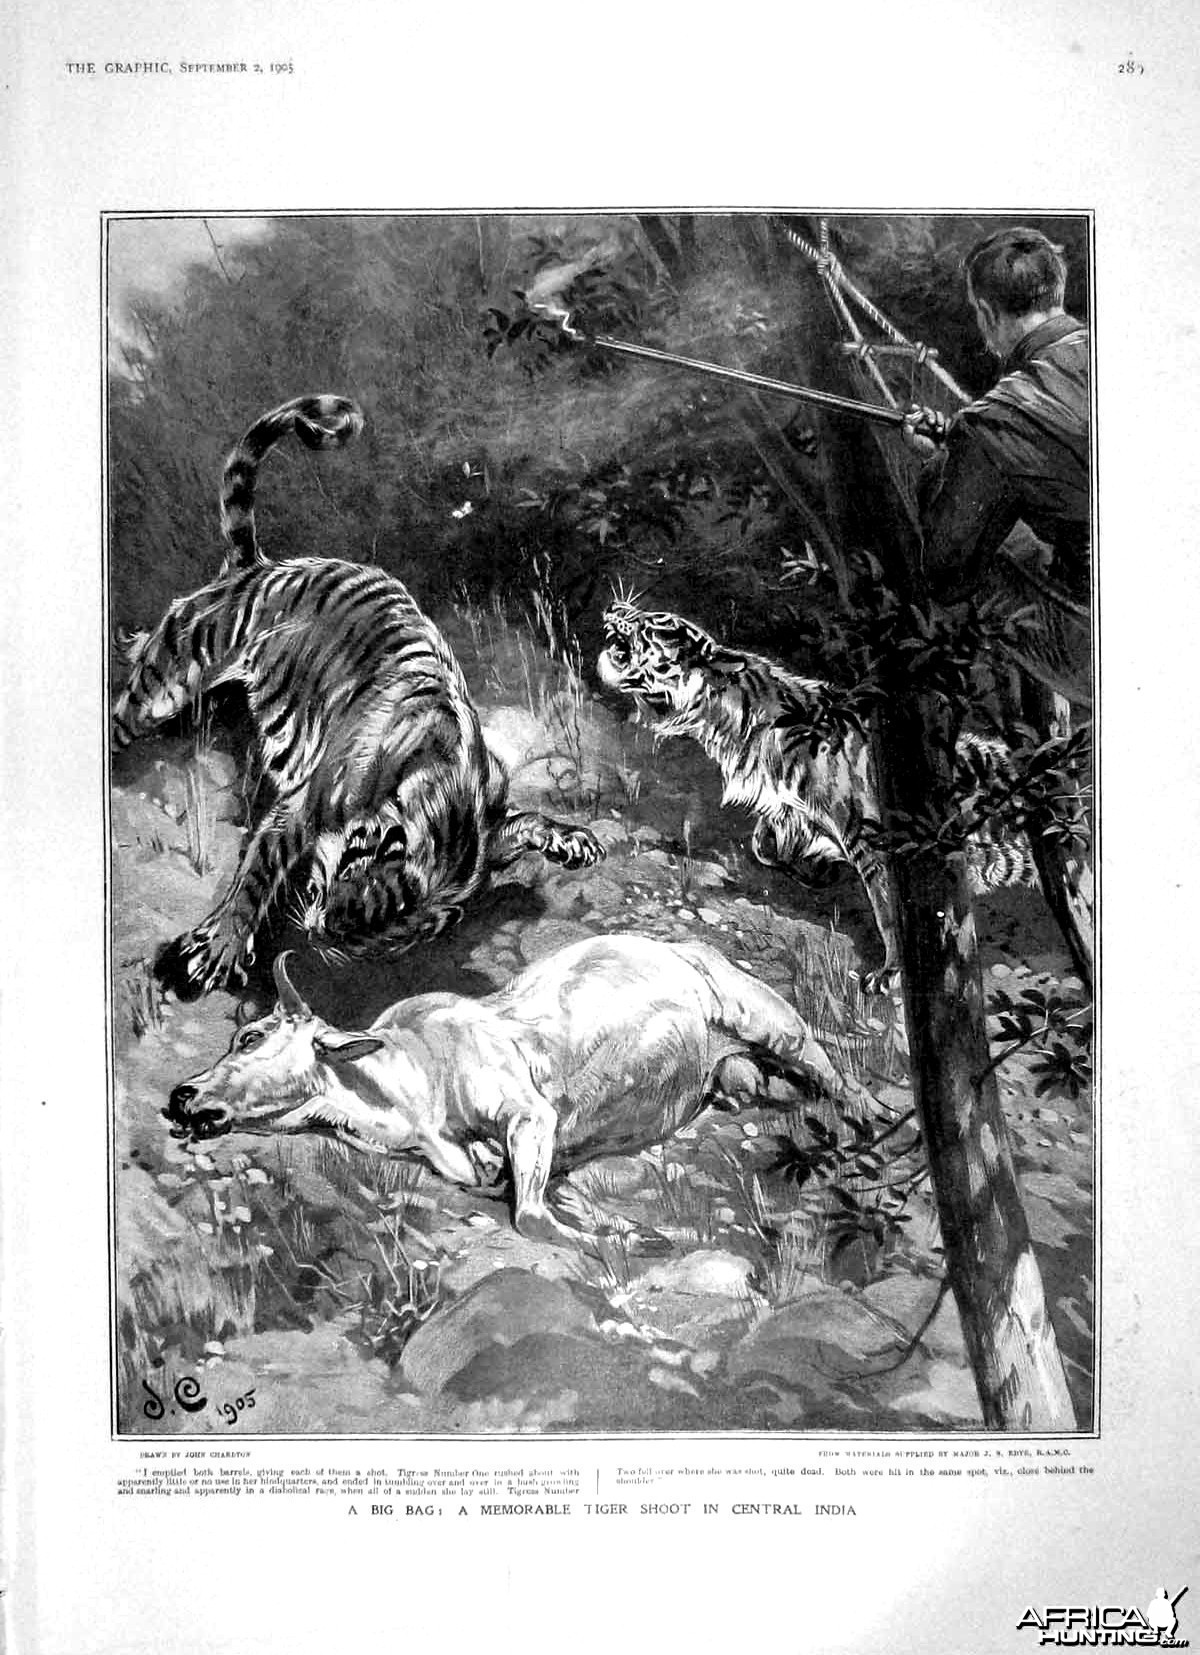 Tiger shoot in Central India